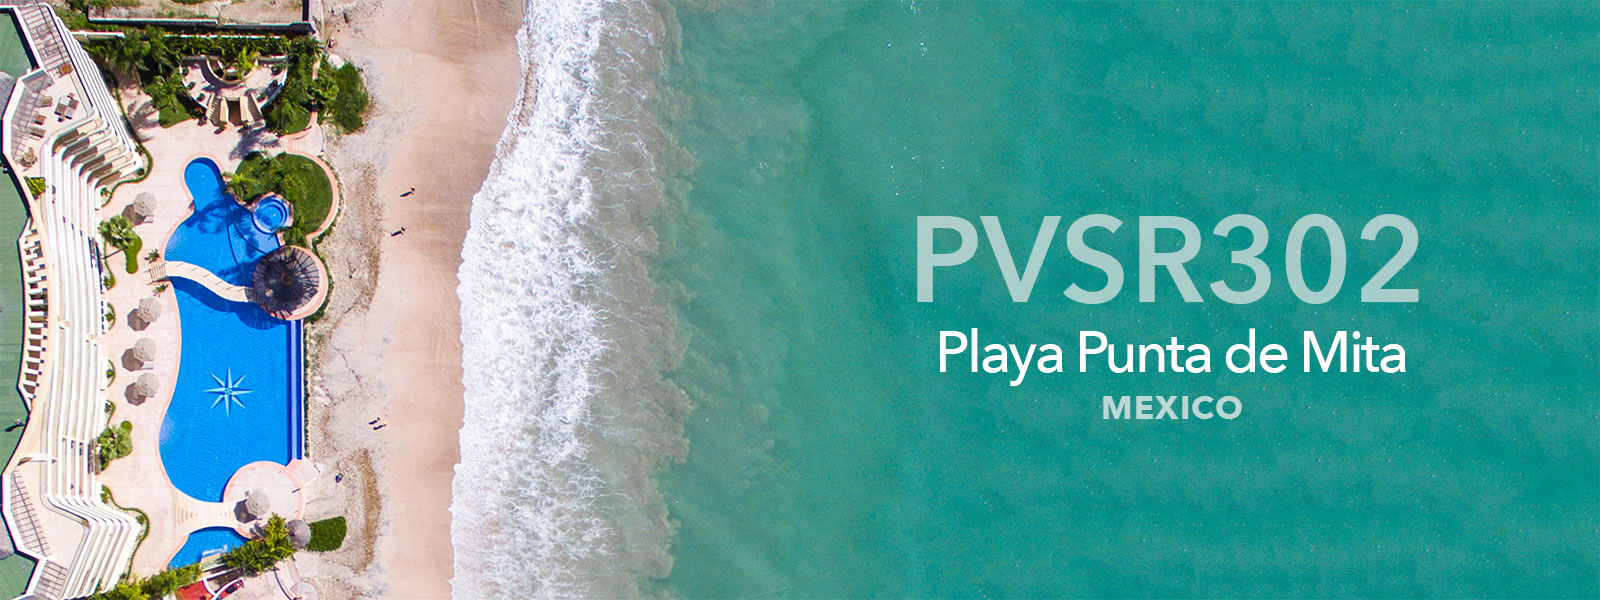 PVSR 302 - Playa Putna de Mita beach condos for sale and rent - Vacation Rentals & Real Estate in Punta Mita